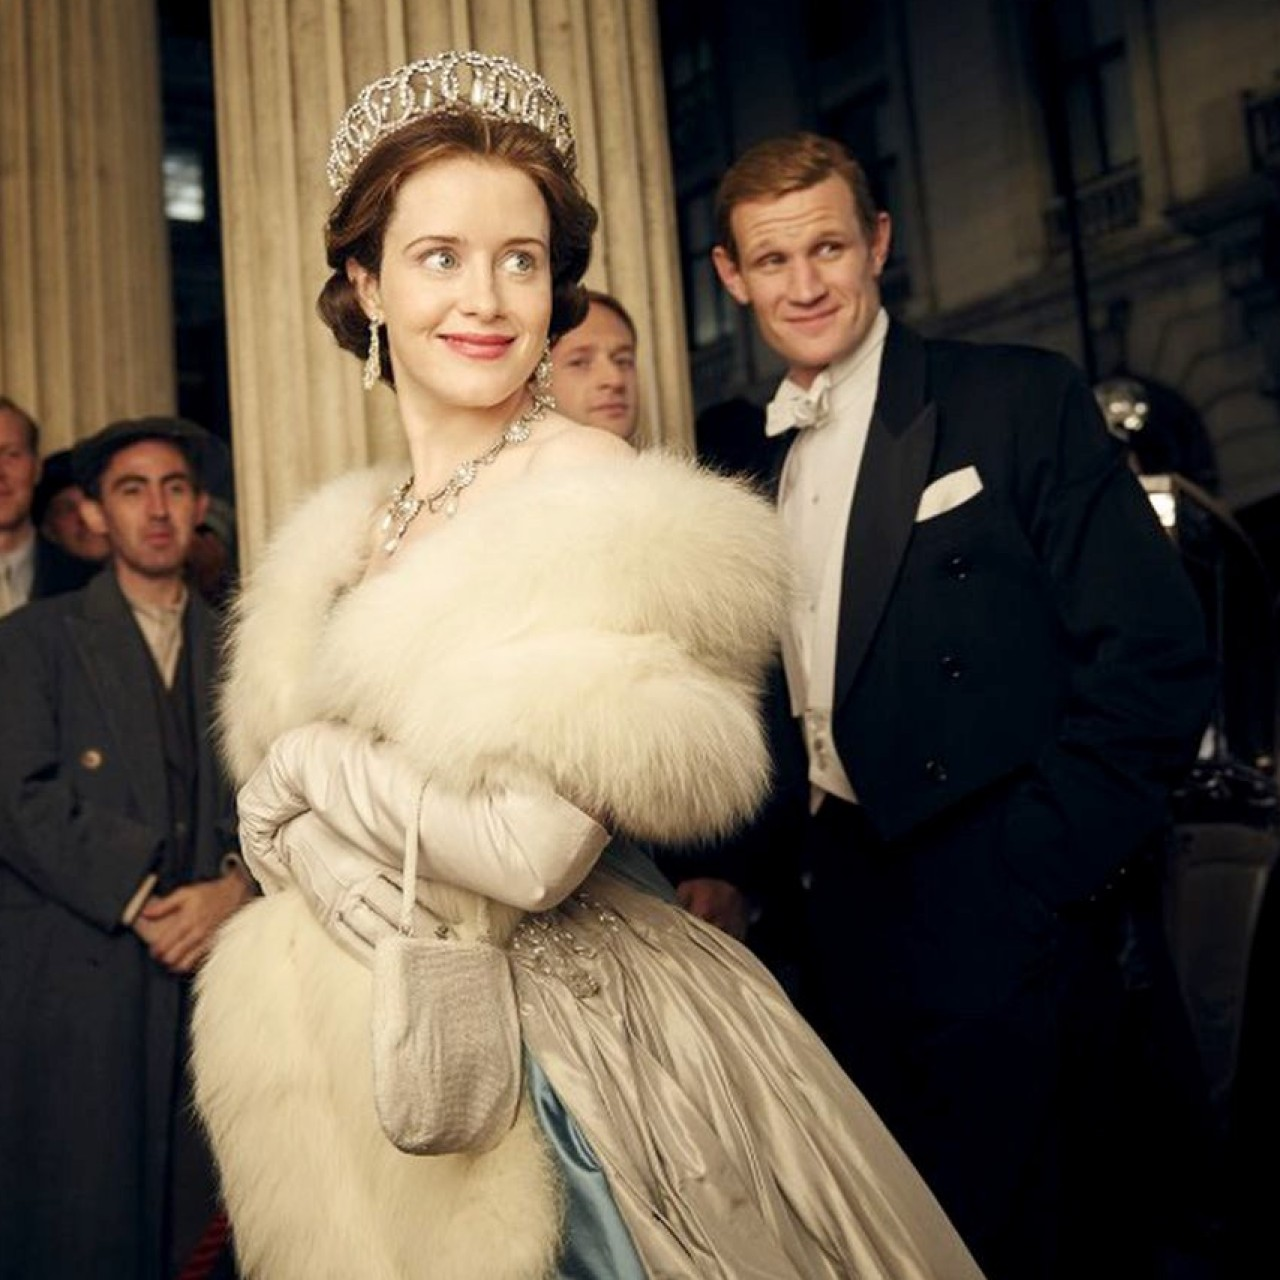 Netflix's The Crown Season 3: Here's what we know so far